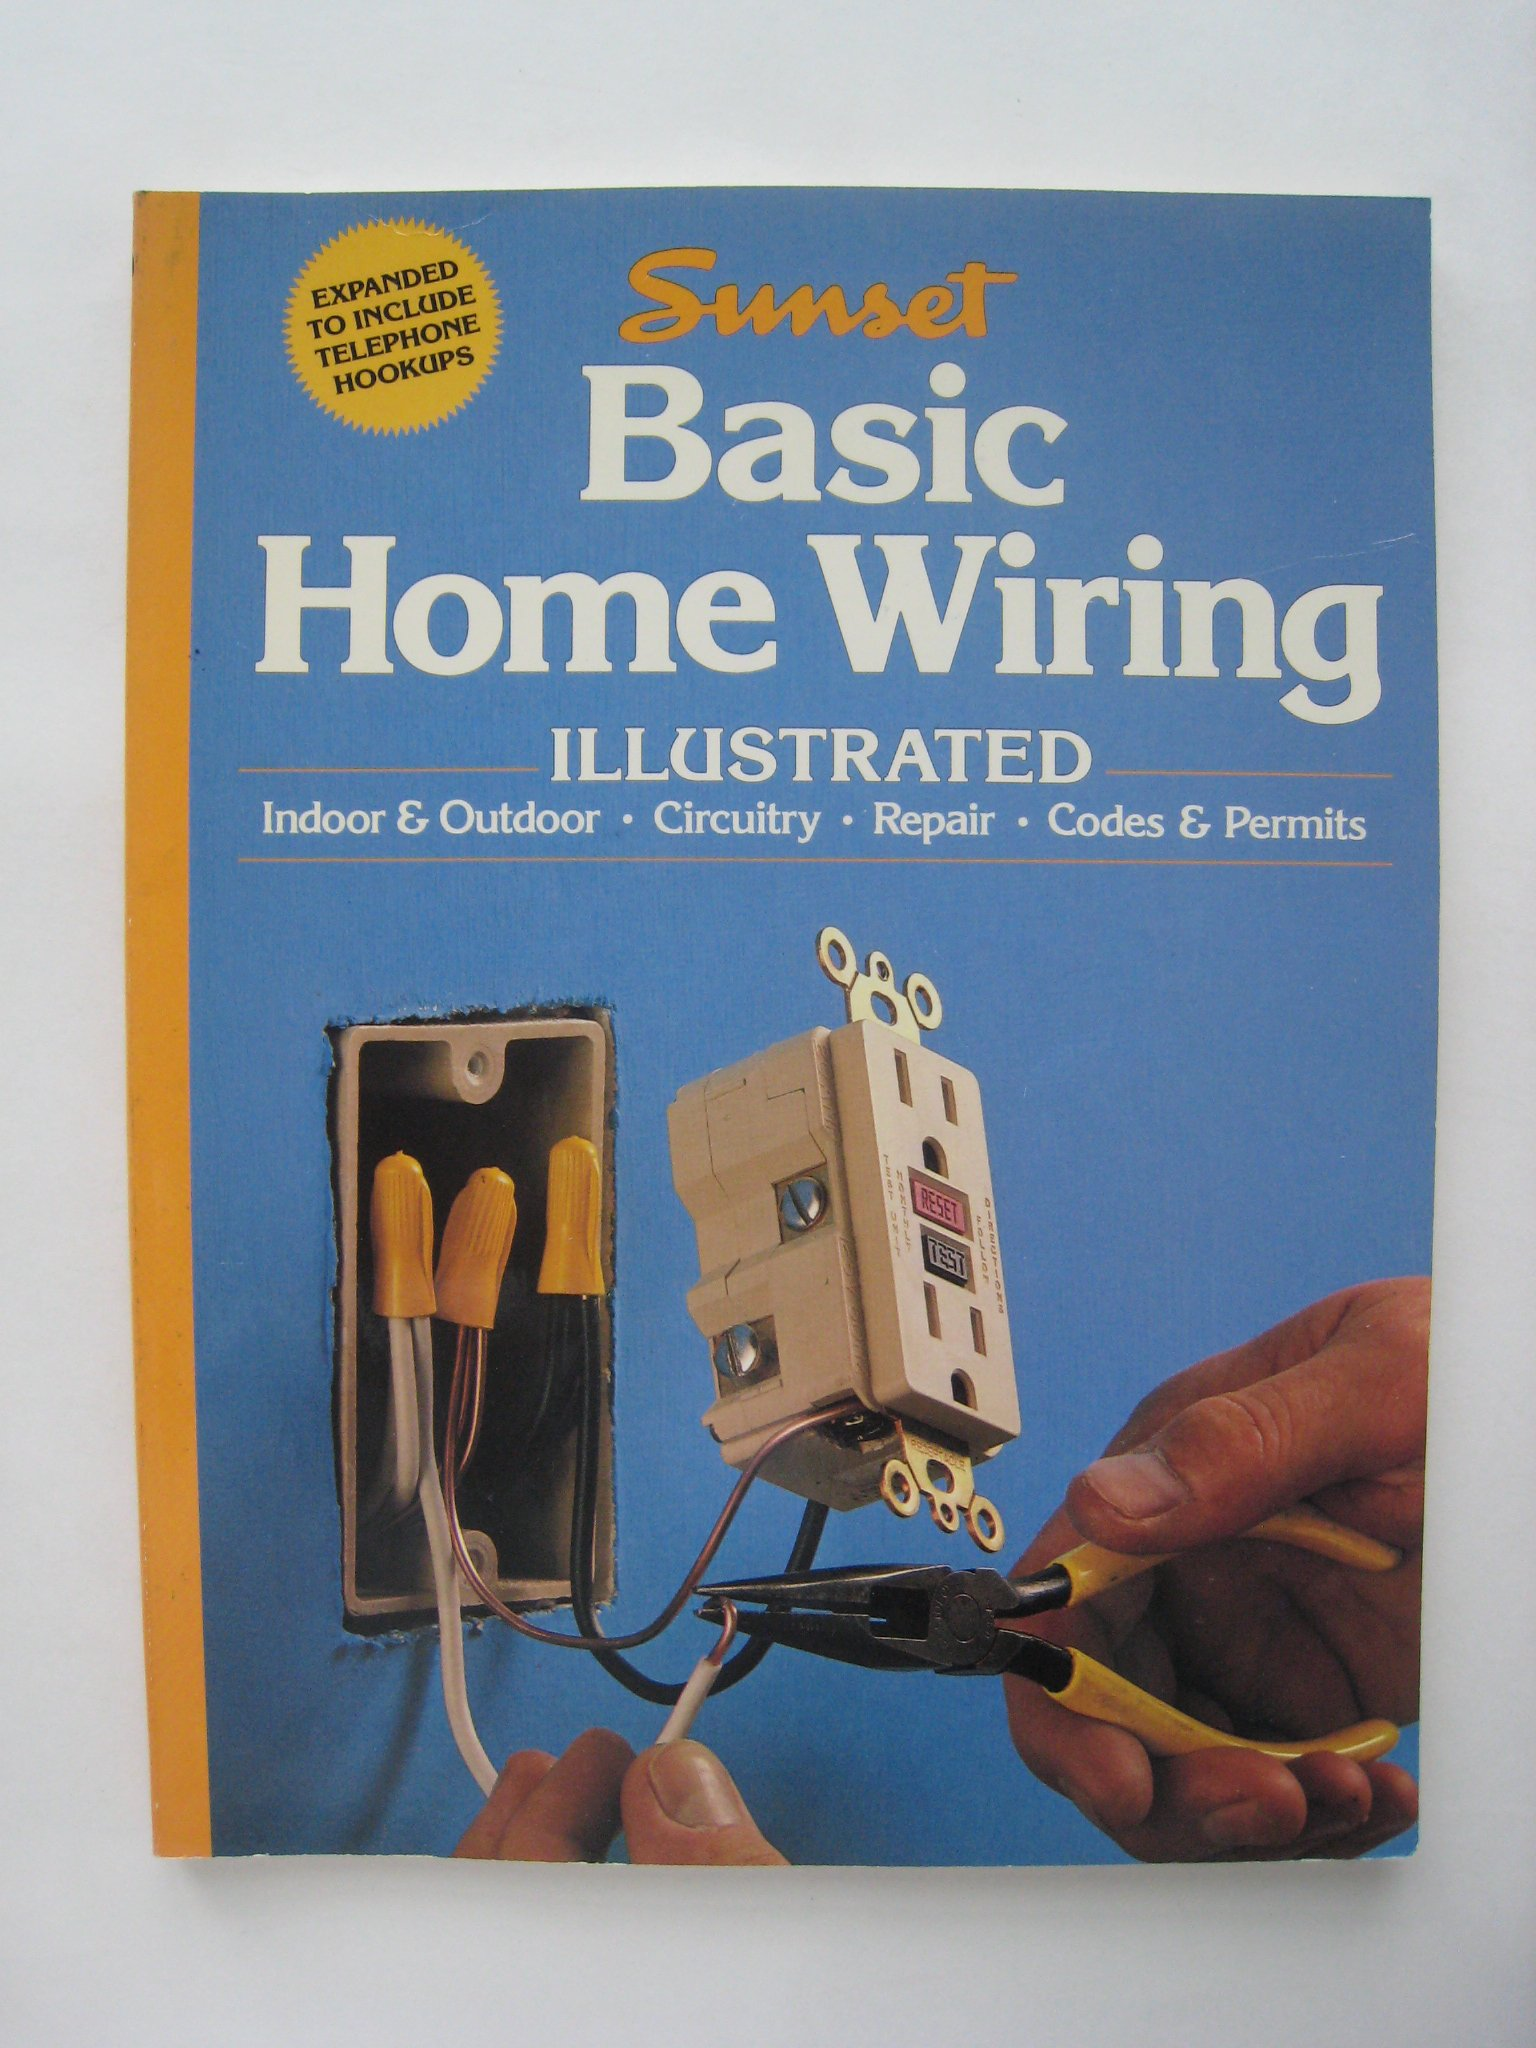 basic home wiring illustrated indoor \u0026 outdoor, circuitry